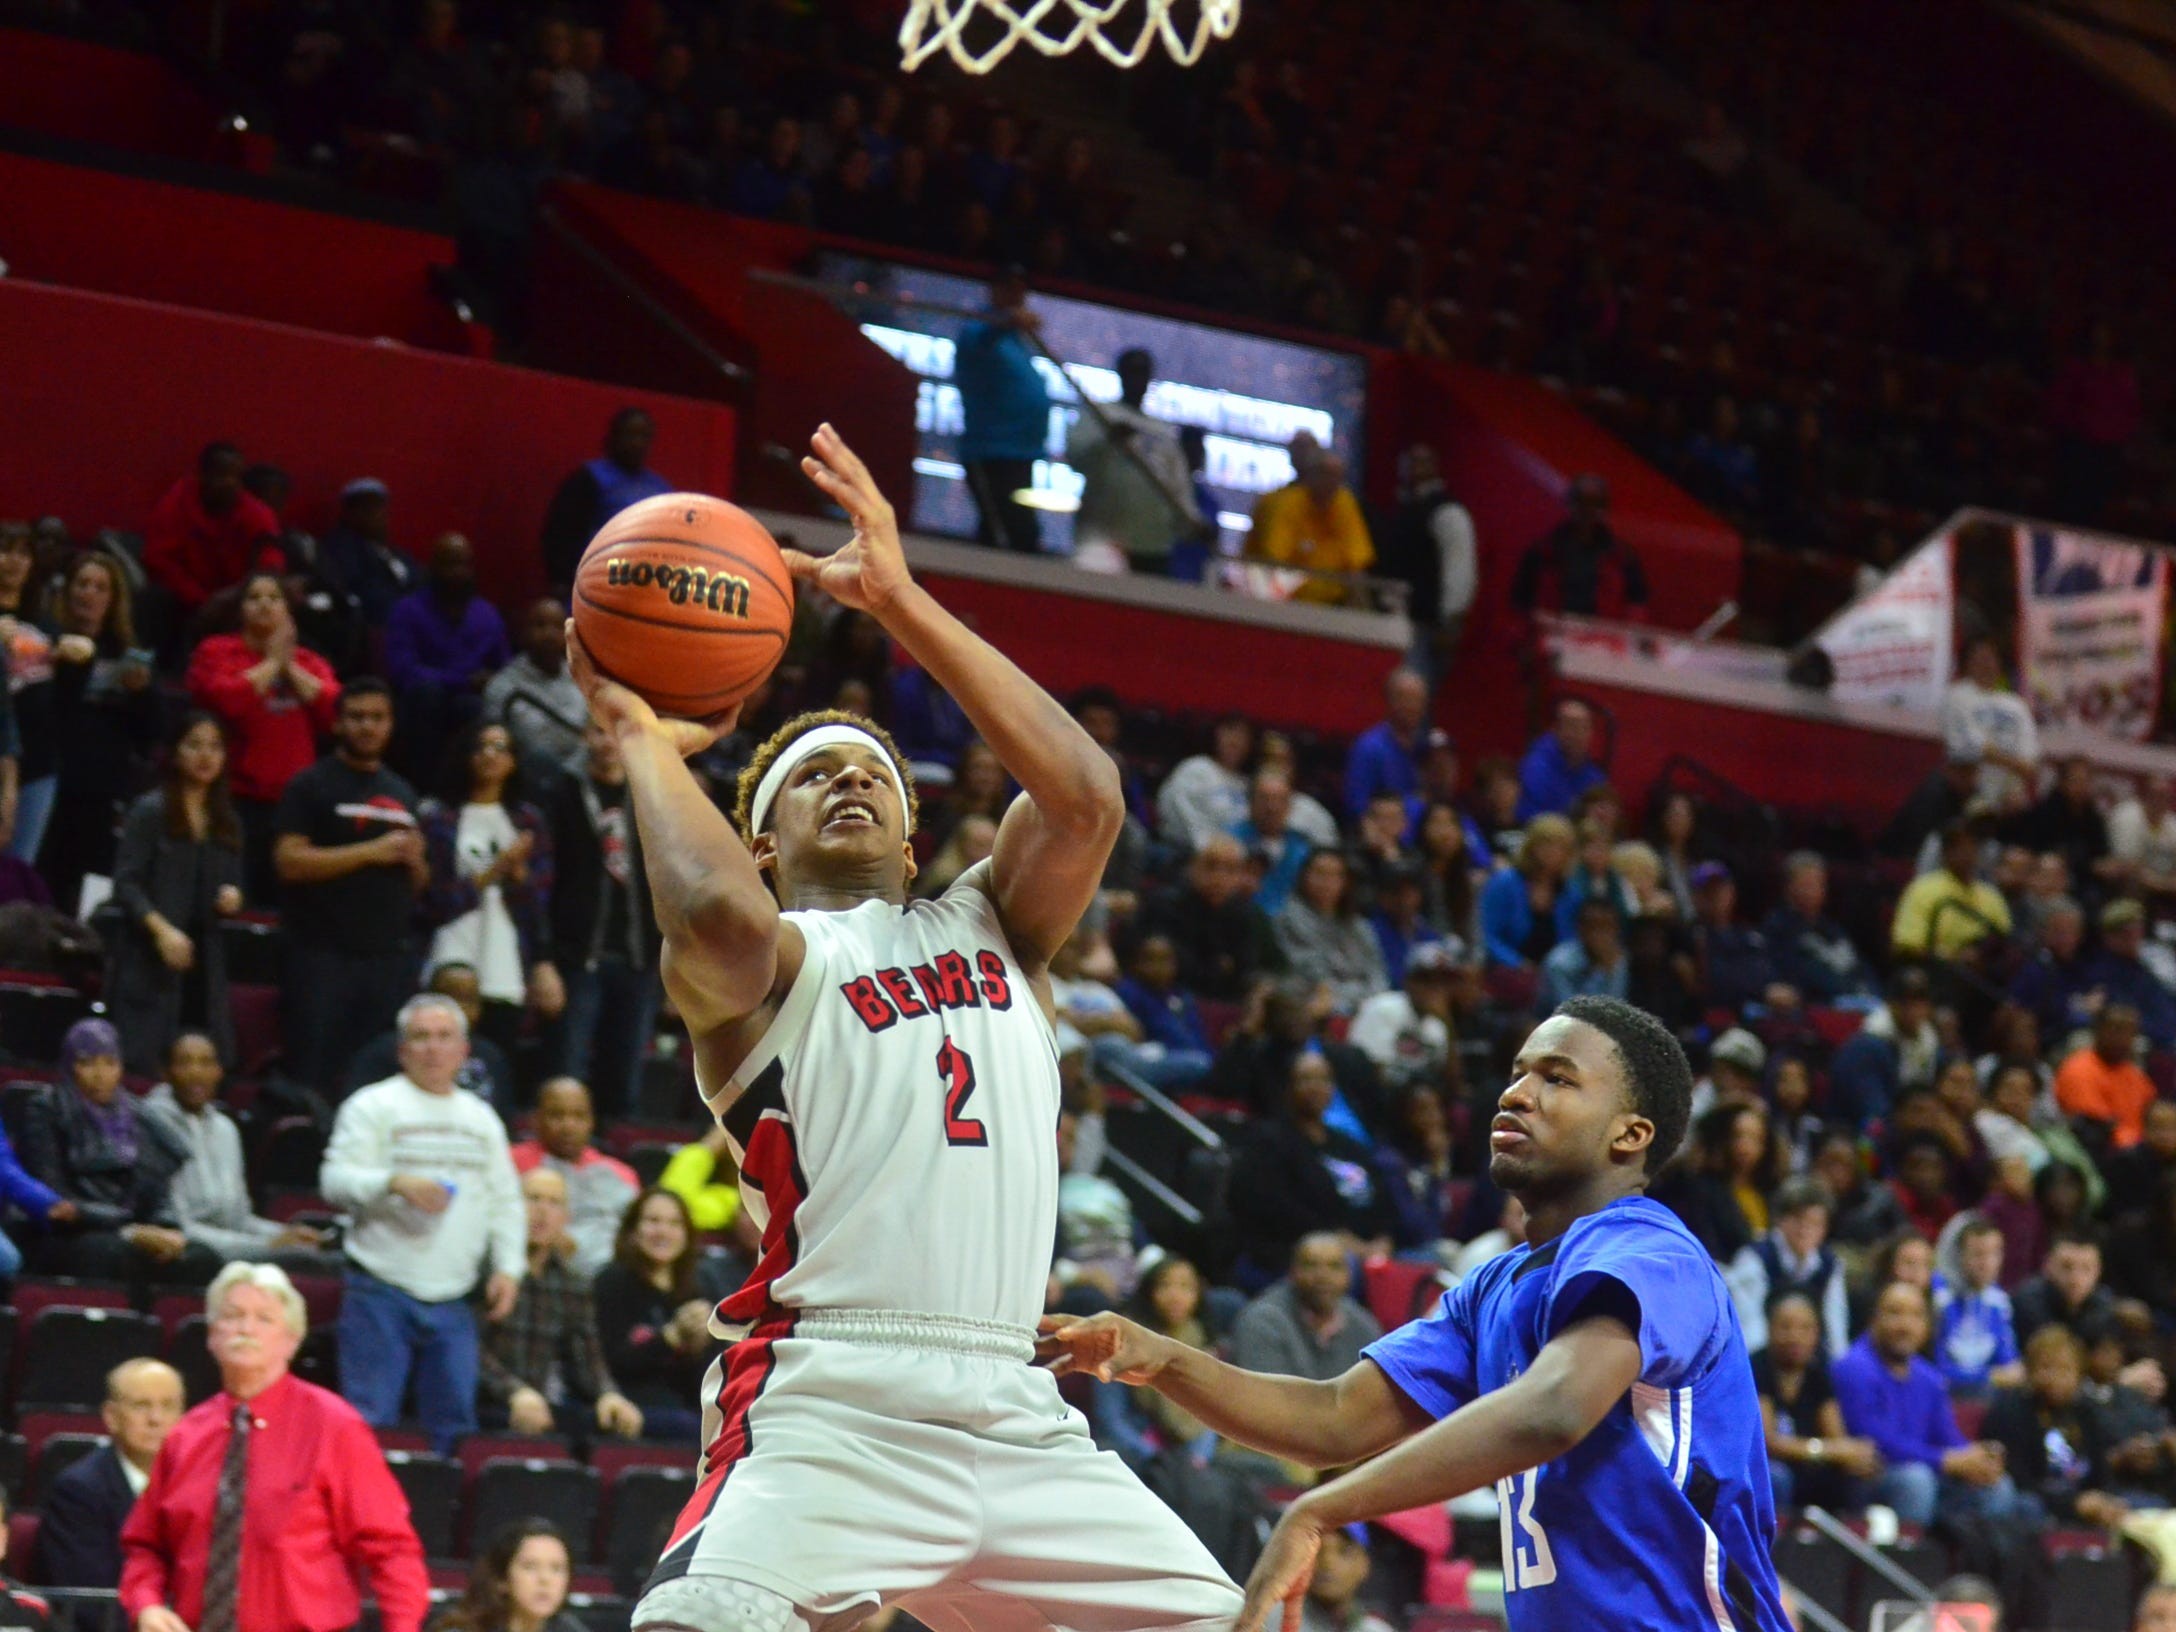 Bergenfield's Jovani Haskins makes a shot againt Ewing in the Group 3 State Finals on March 15, 2015. at Rutgers University. Bergenfield defeated Ewing 80-72.